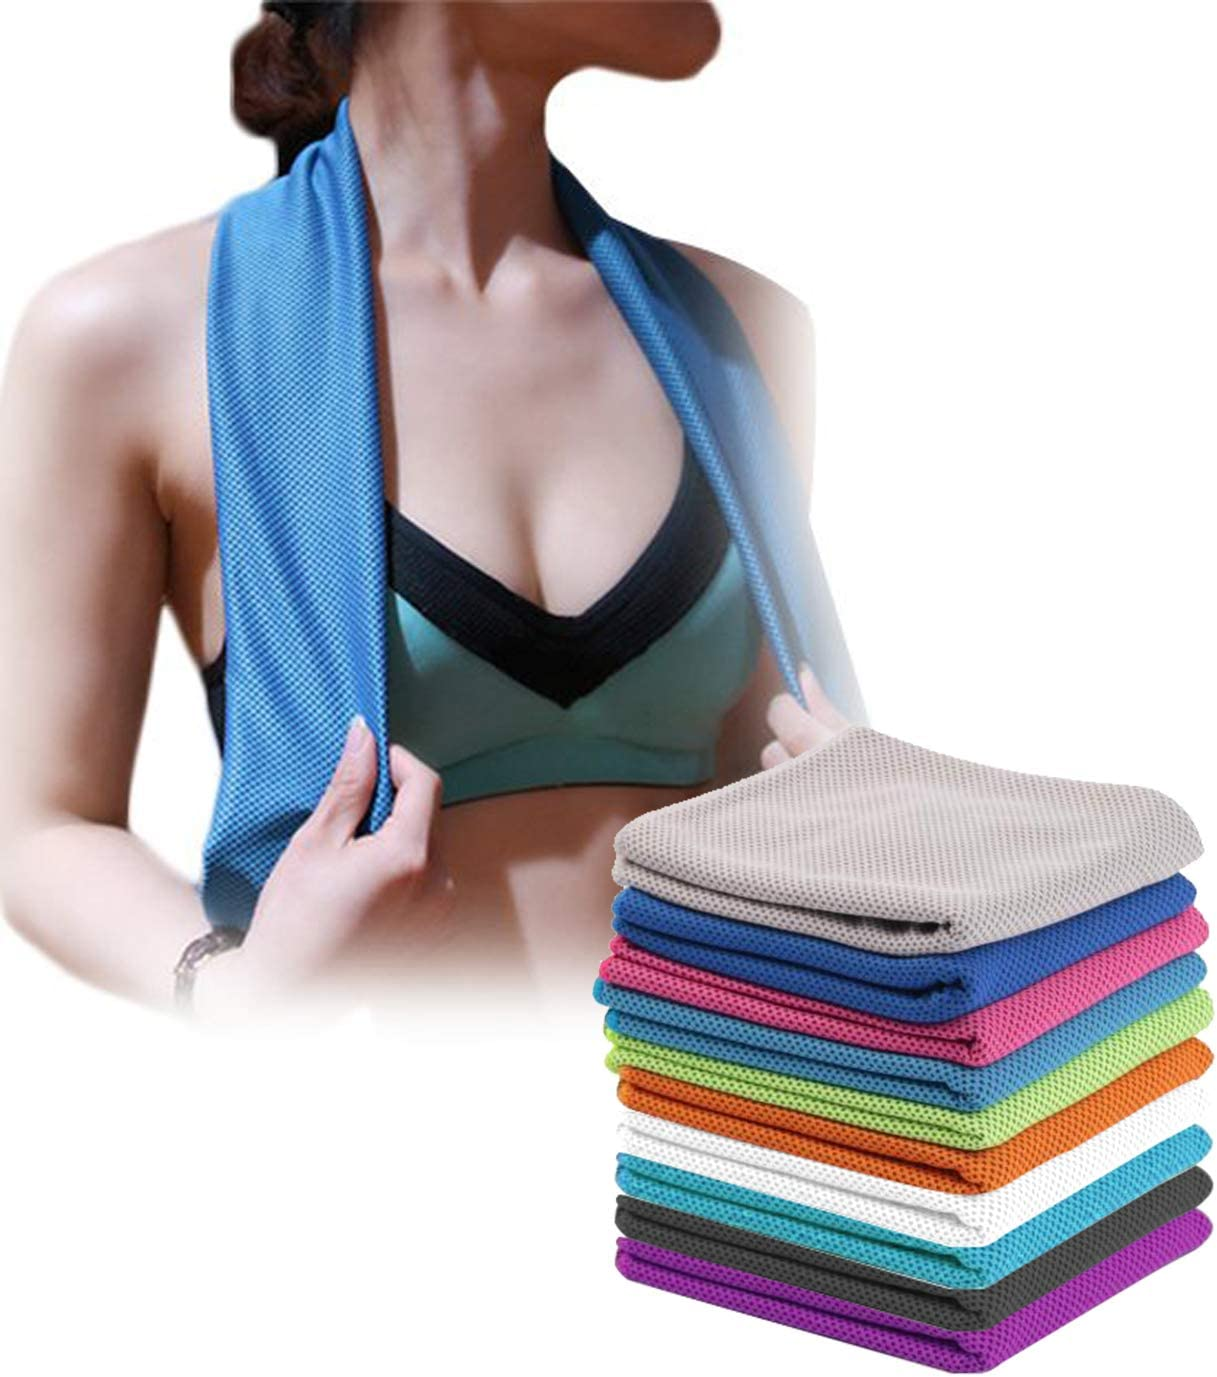 U-pick 4 Packs Cooling Towel 40x 12 Ice Towel,Microfiber Towel,Soft Breathable Chilly Towel for Yoga,Sport,Gym,Workout,Camping,Fitness,Running,Workout/&More Activities